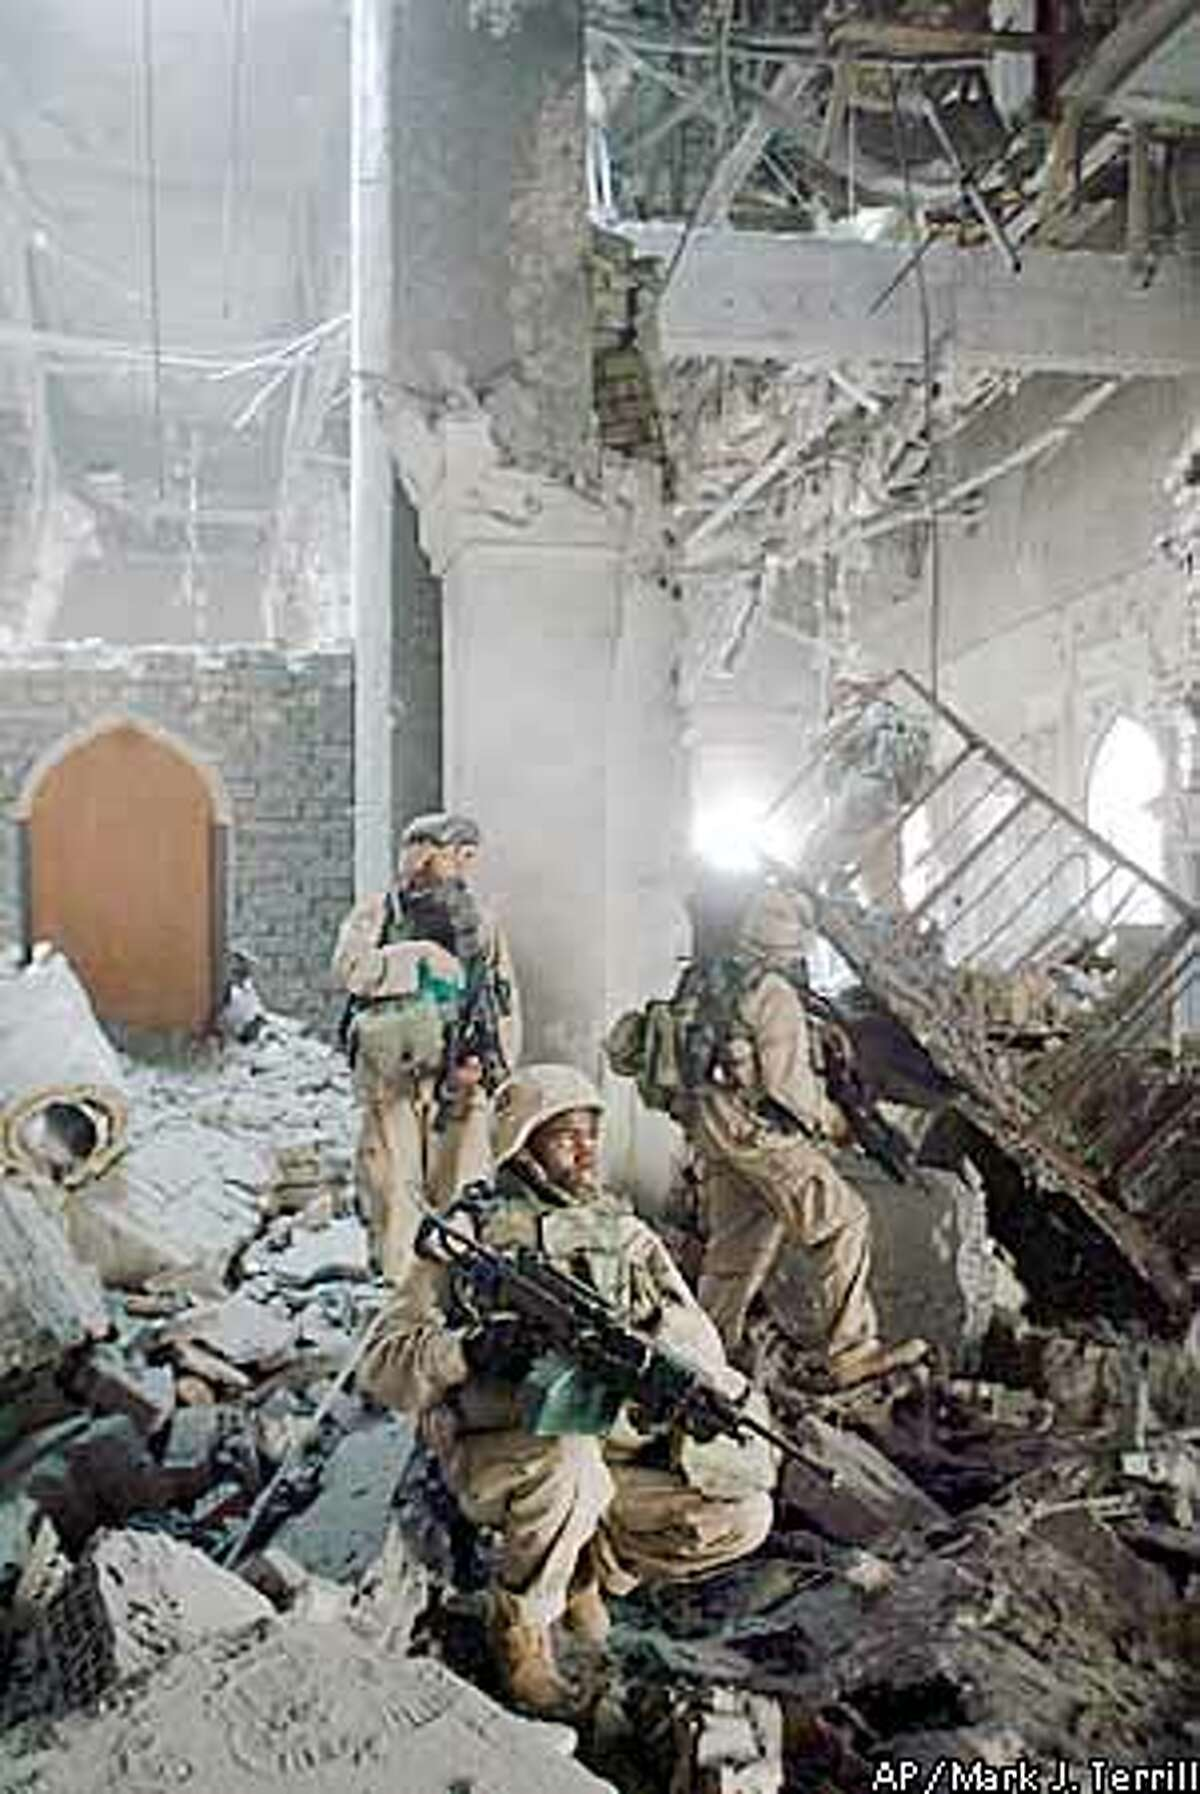 U.S. Army soldiers from A Company, 3rd Battalion, 7th Infantry Regiment, search one of Saddam Hussein's palaces damaged after a bombing, in Baghdad Monday, April 7, 2003. Coalition soldiers took over key buildings Monday, as gunfire and explosions thundered in many parts of the battered Iraqi capital. (AP Photo/John Moore)